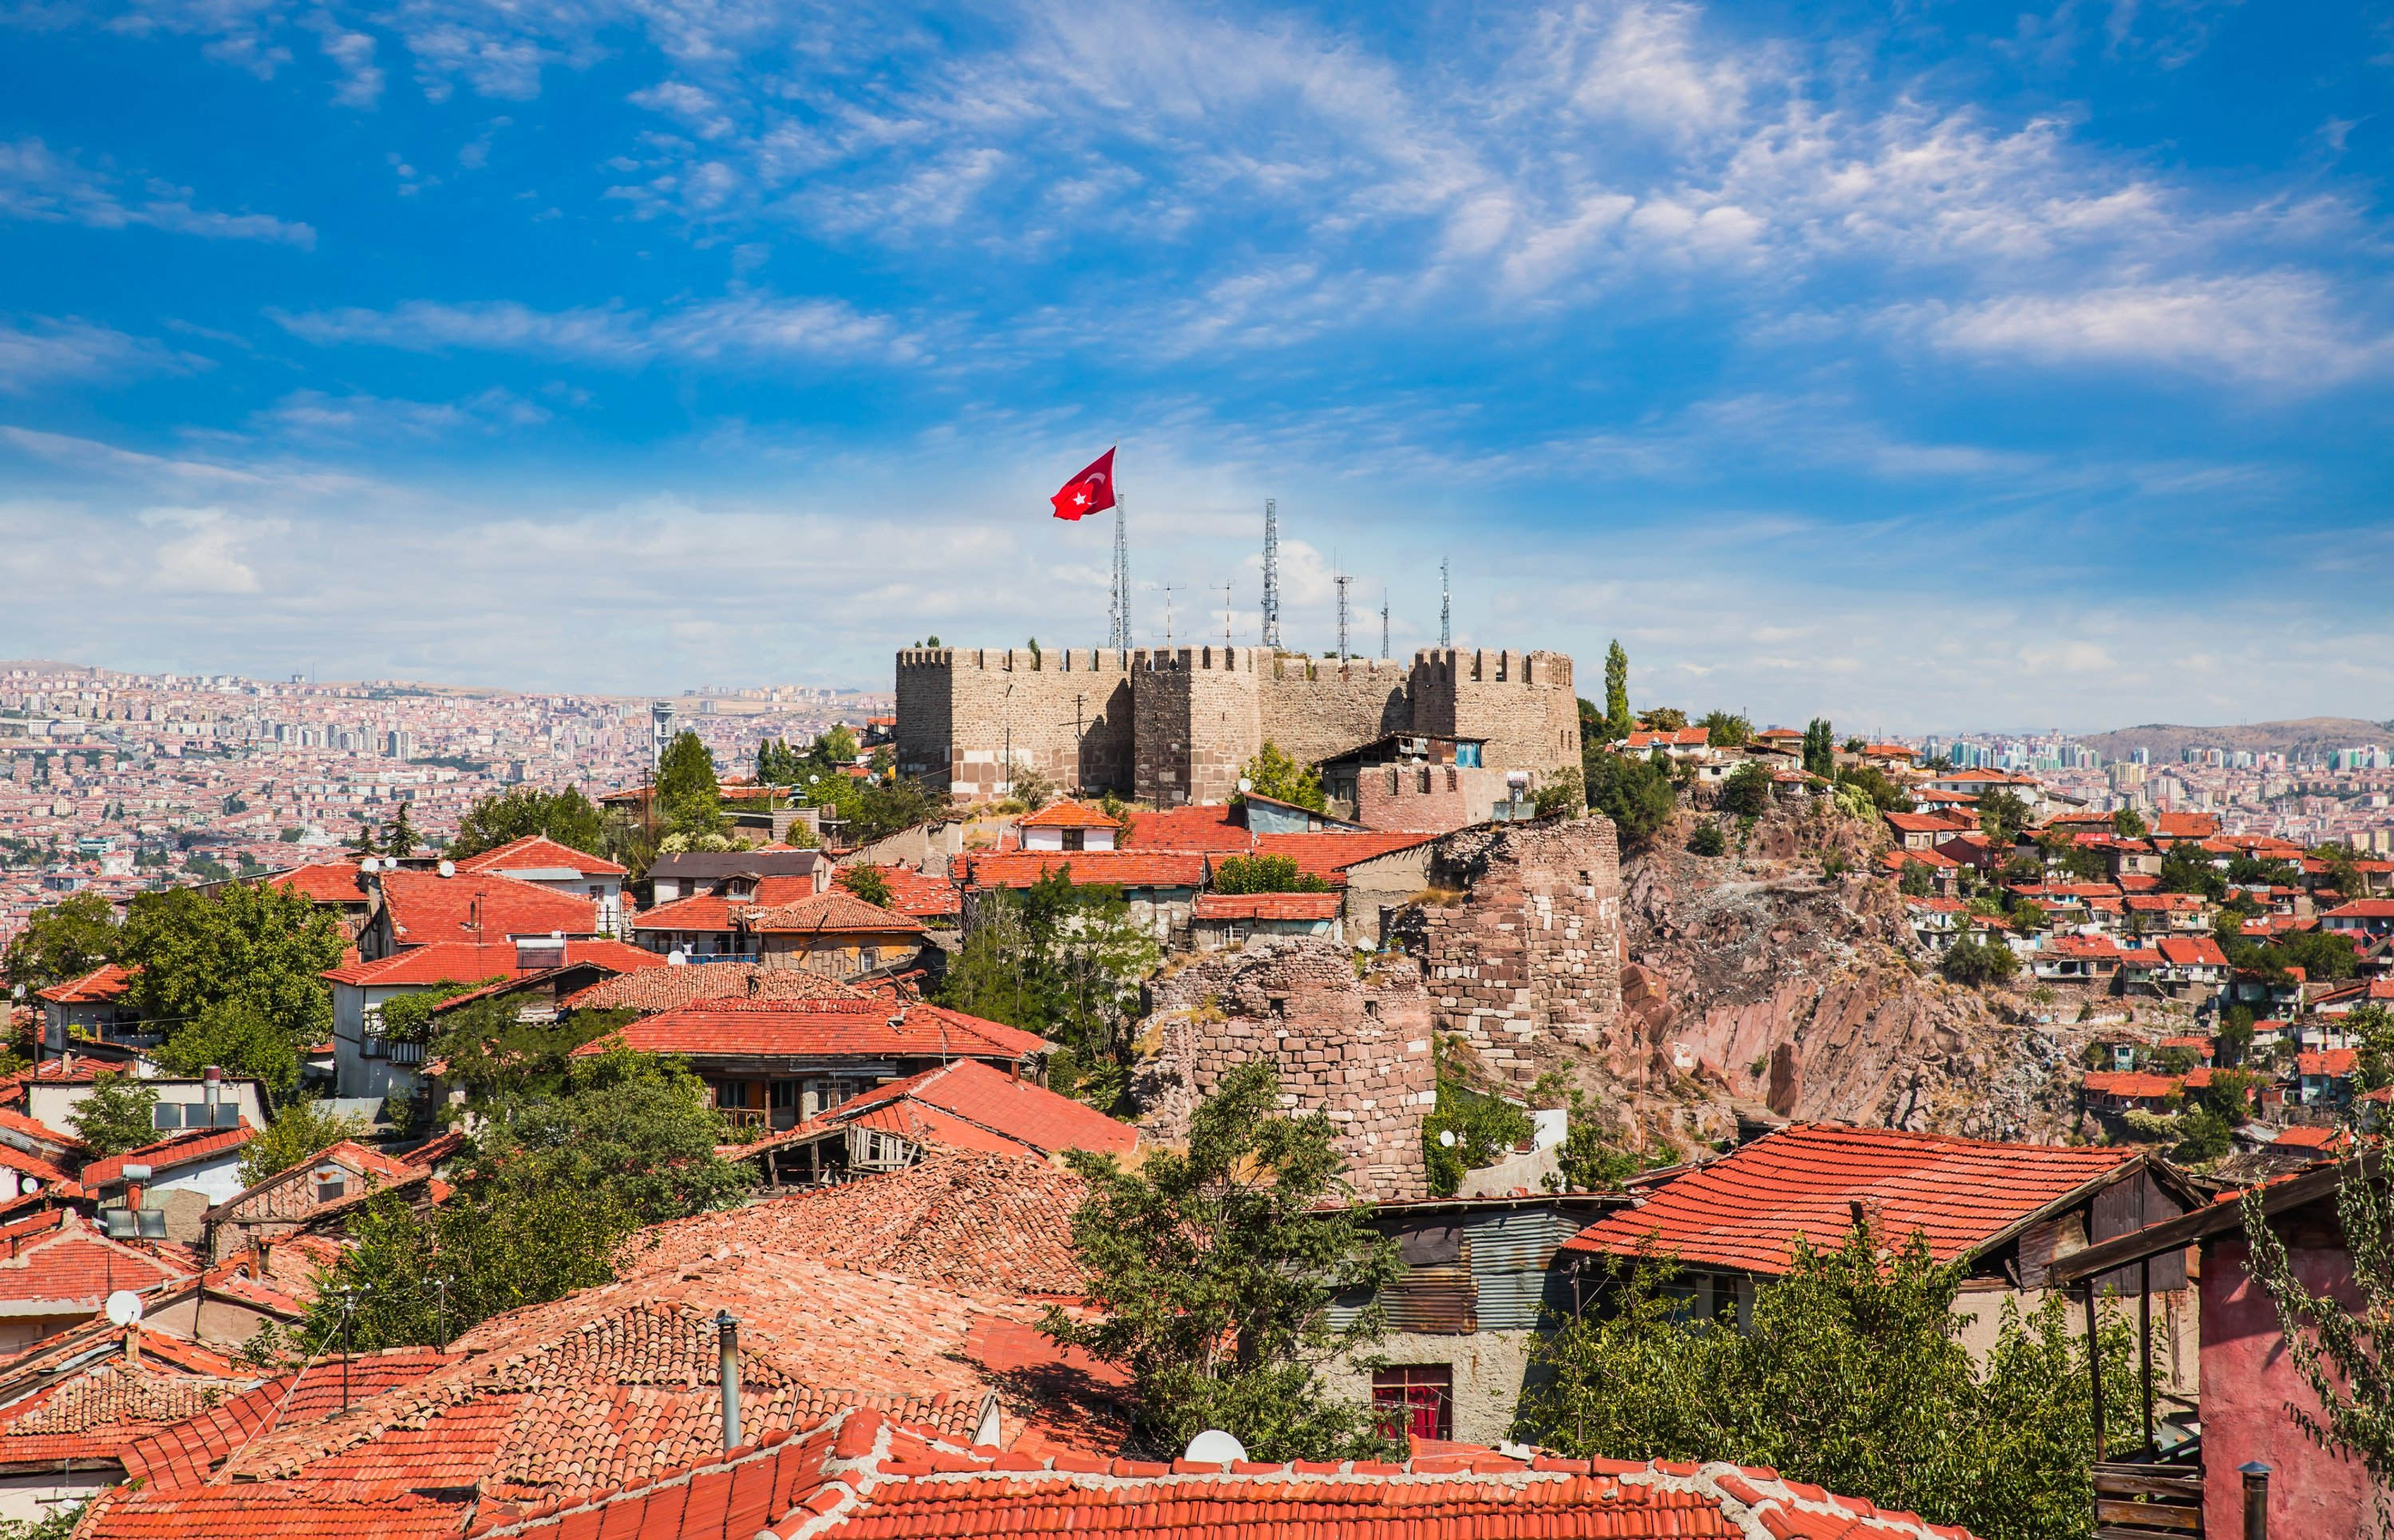 View of Ankara Castle and the interior of the castle. (Shutterstock Photo)